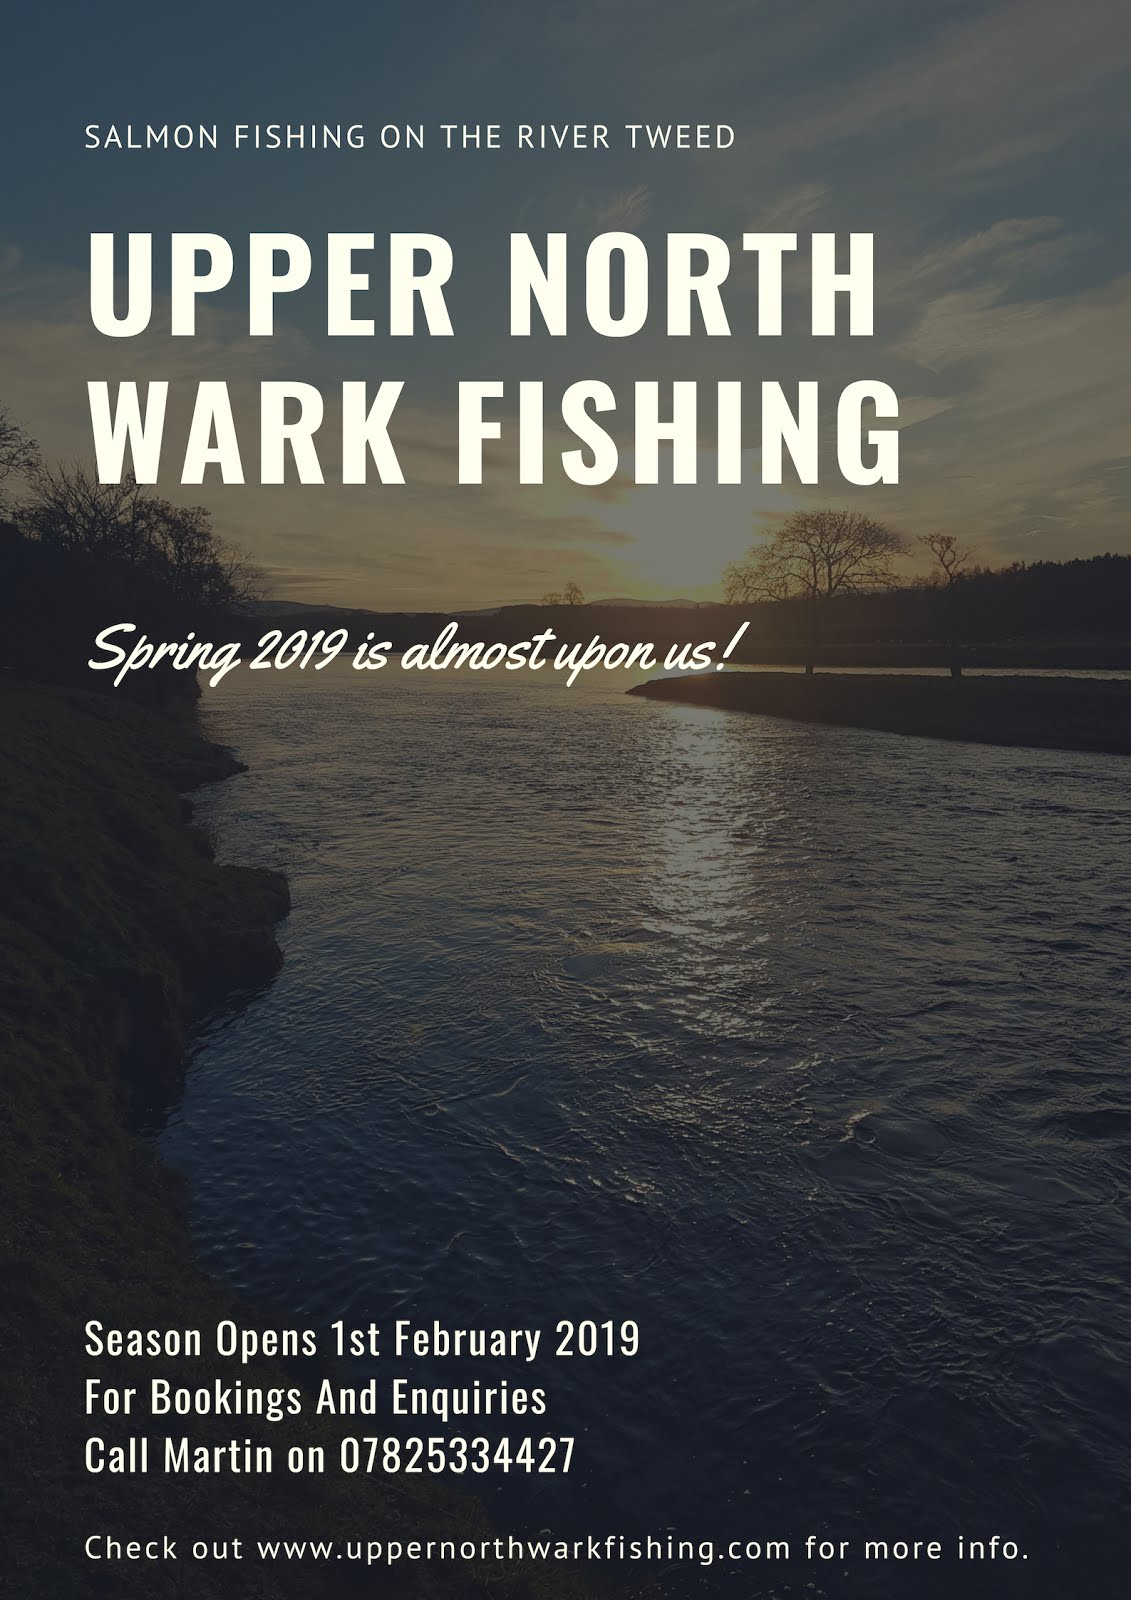 Upper North Wark Salmon Fishing